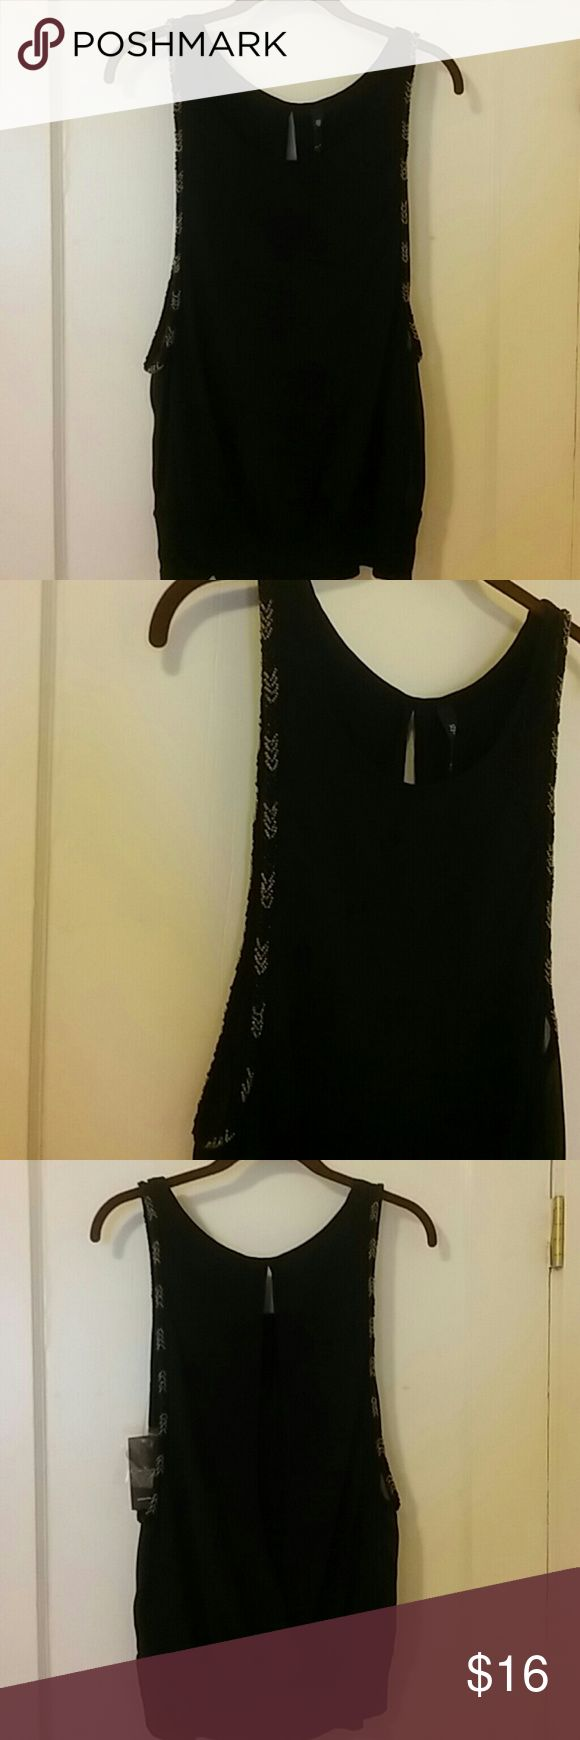 Jessica Simpson Flirty lined top with arm sleeve beading  Wide waist band Sexy back NEXT Jessica Simpson Tops Blouses